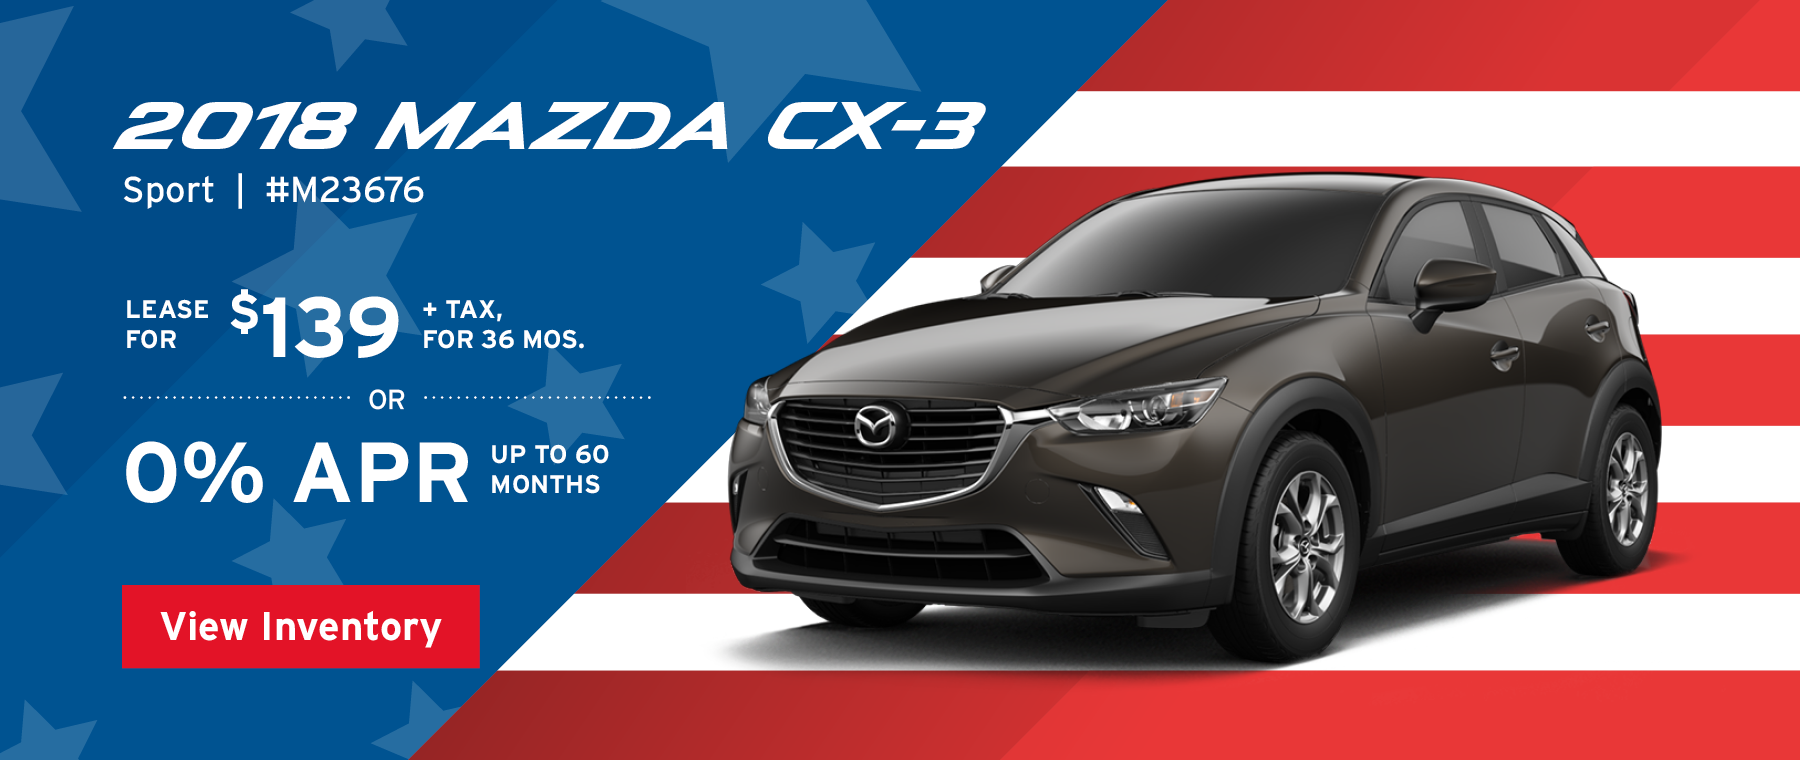 Lease the 2018 Mazda CX-3 Sport for $139, plus tax for 36 months, or 0% APR up to 60 months.